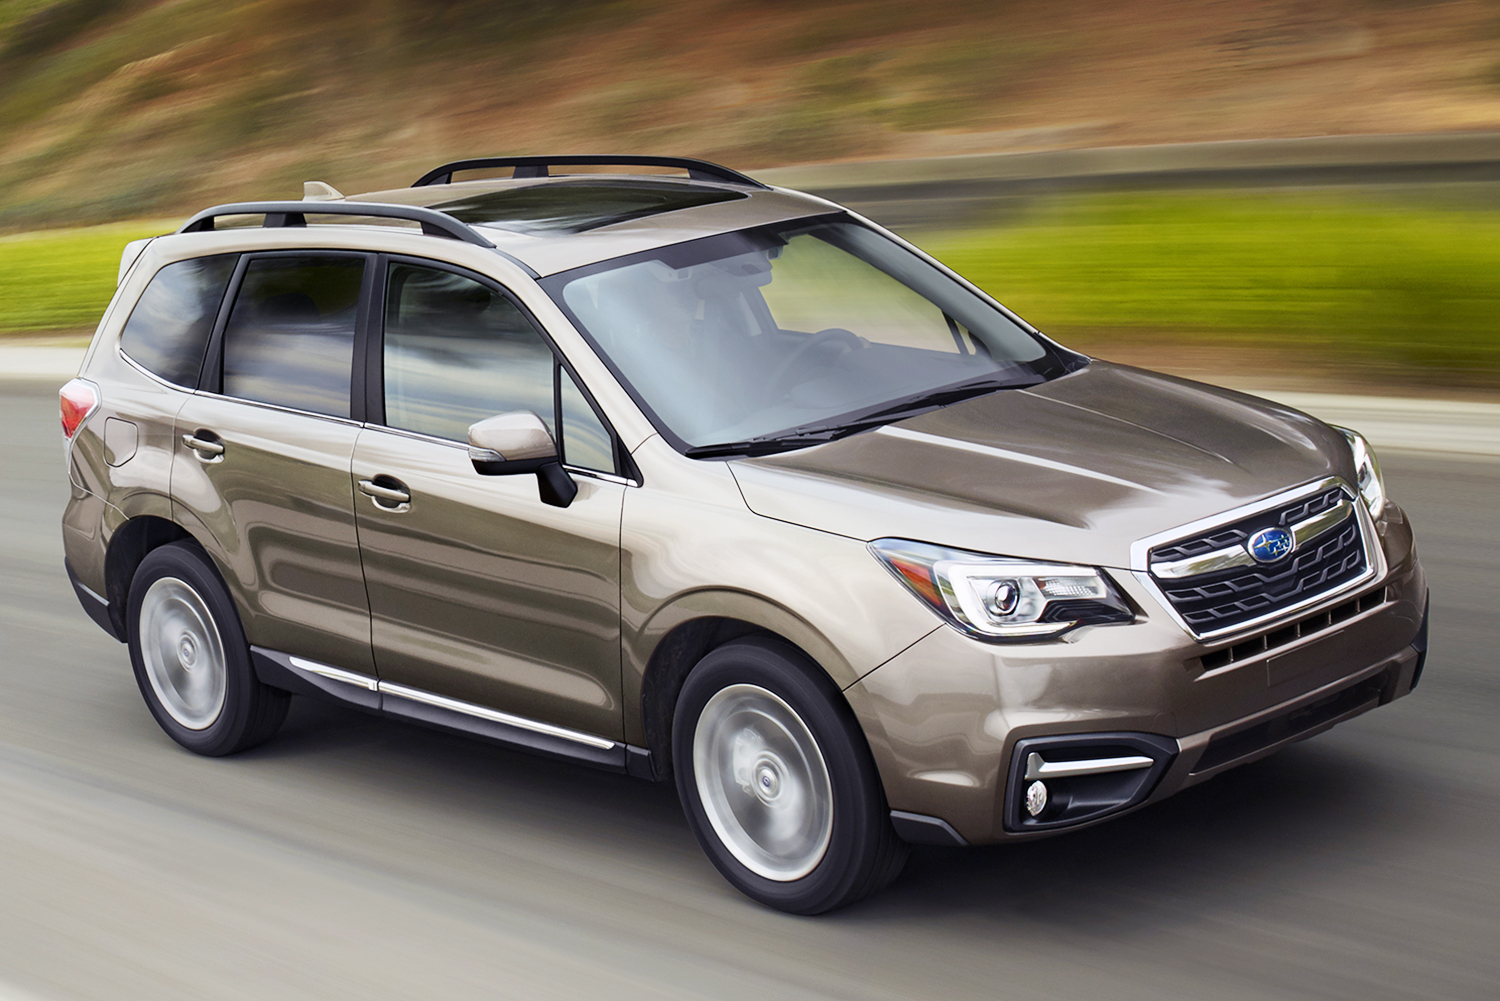 PREVIEW: 2017 Subaru Forester – New Look, More Traction ...